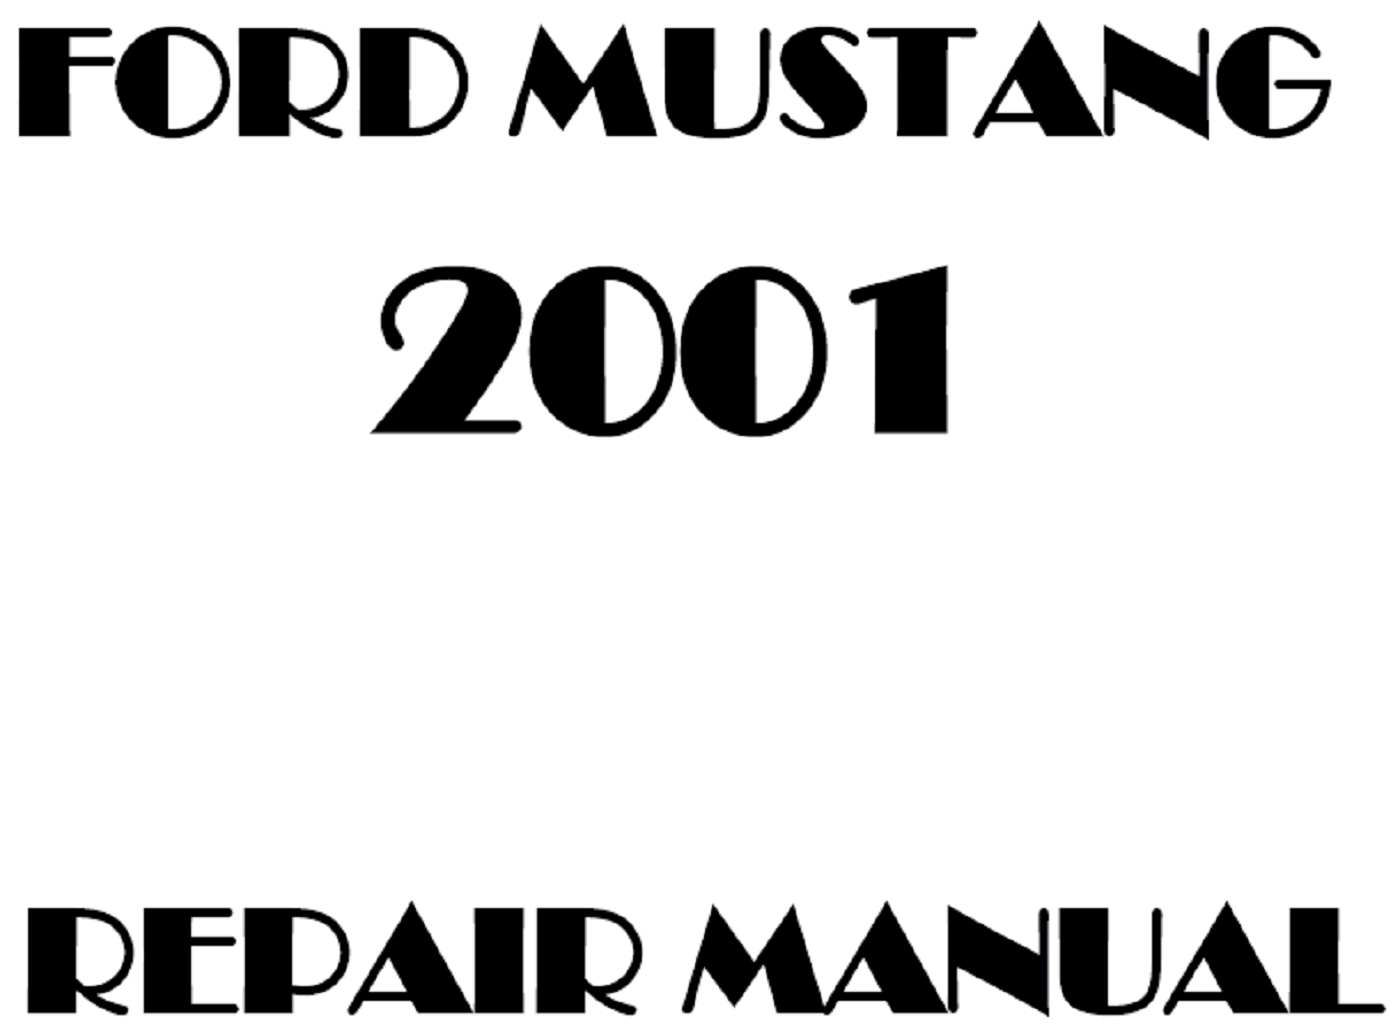 2001 Ford Mustang repair manual